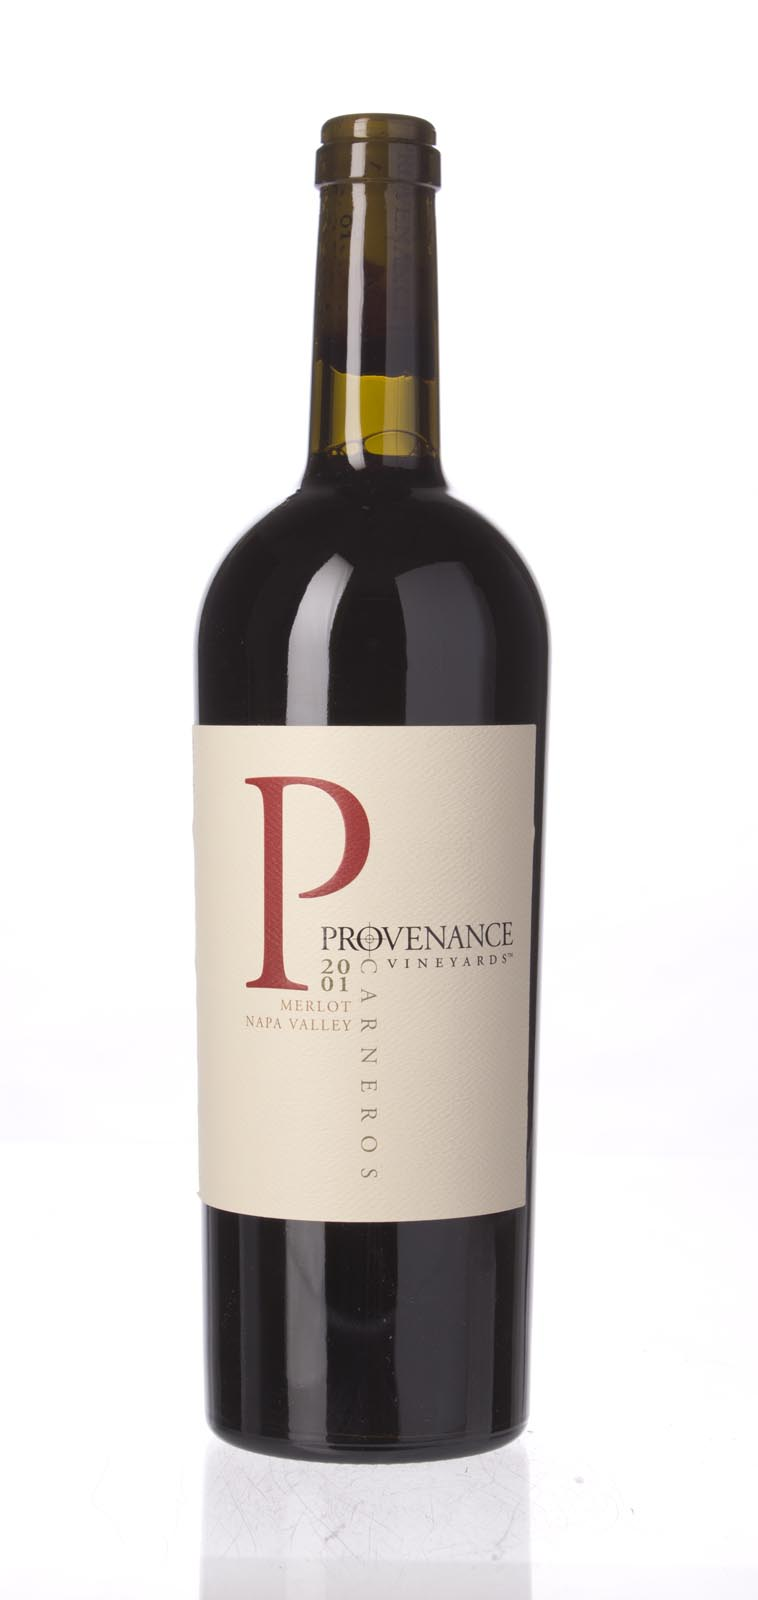 Provenance Merlot Napa Valley 2001, 750ml () from The BPW - Merchants of rare and fine wines.